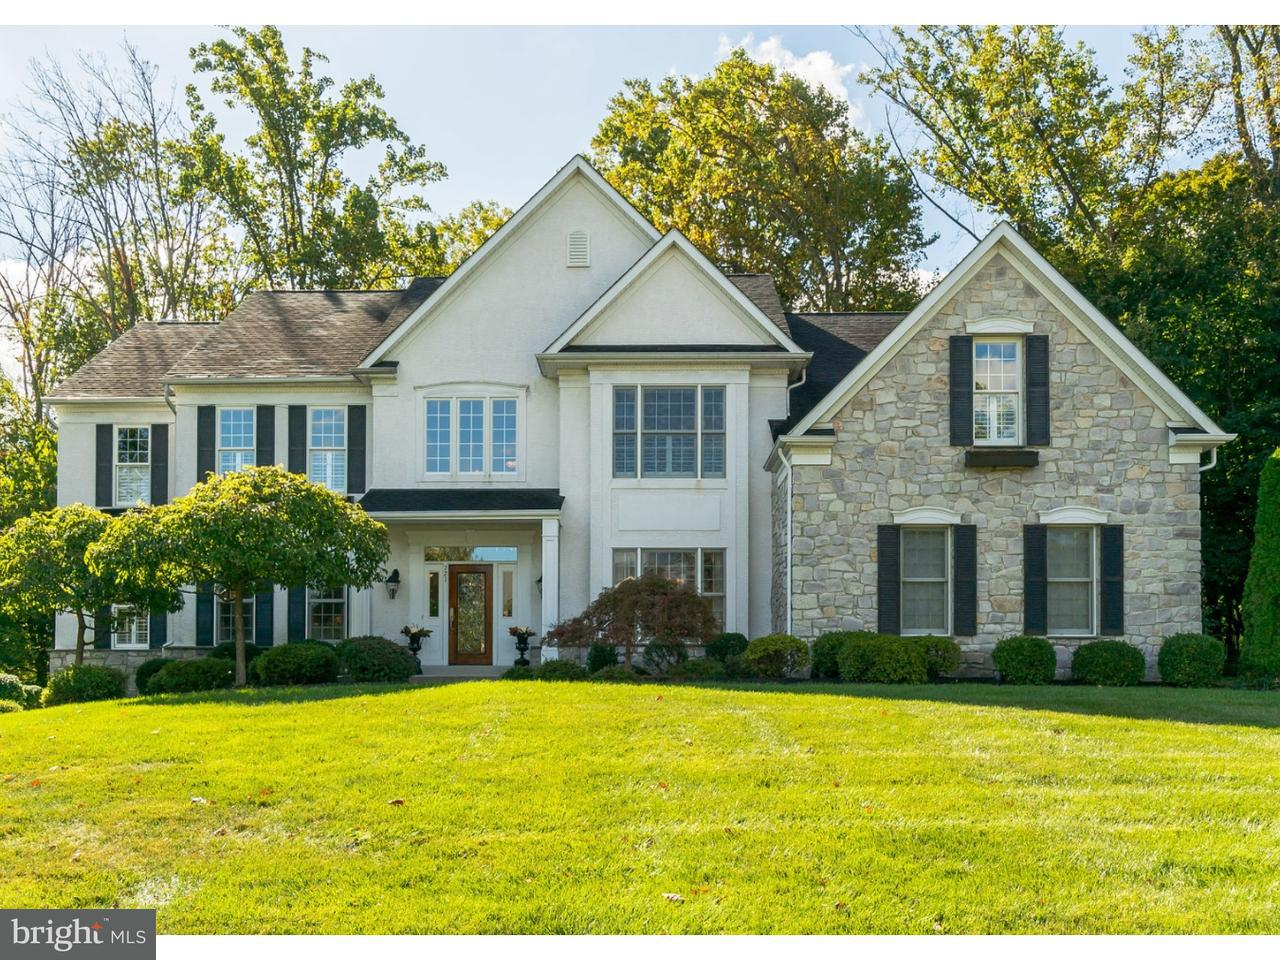 Single Family Home for Sale at 721 PRESIDENTIAL Drive Horsham, Pennsylvania 19044 United States